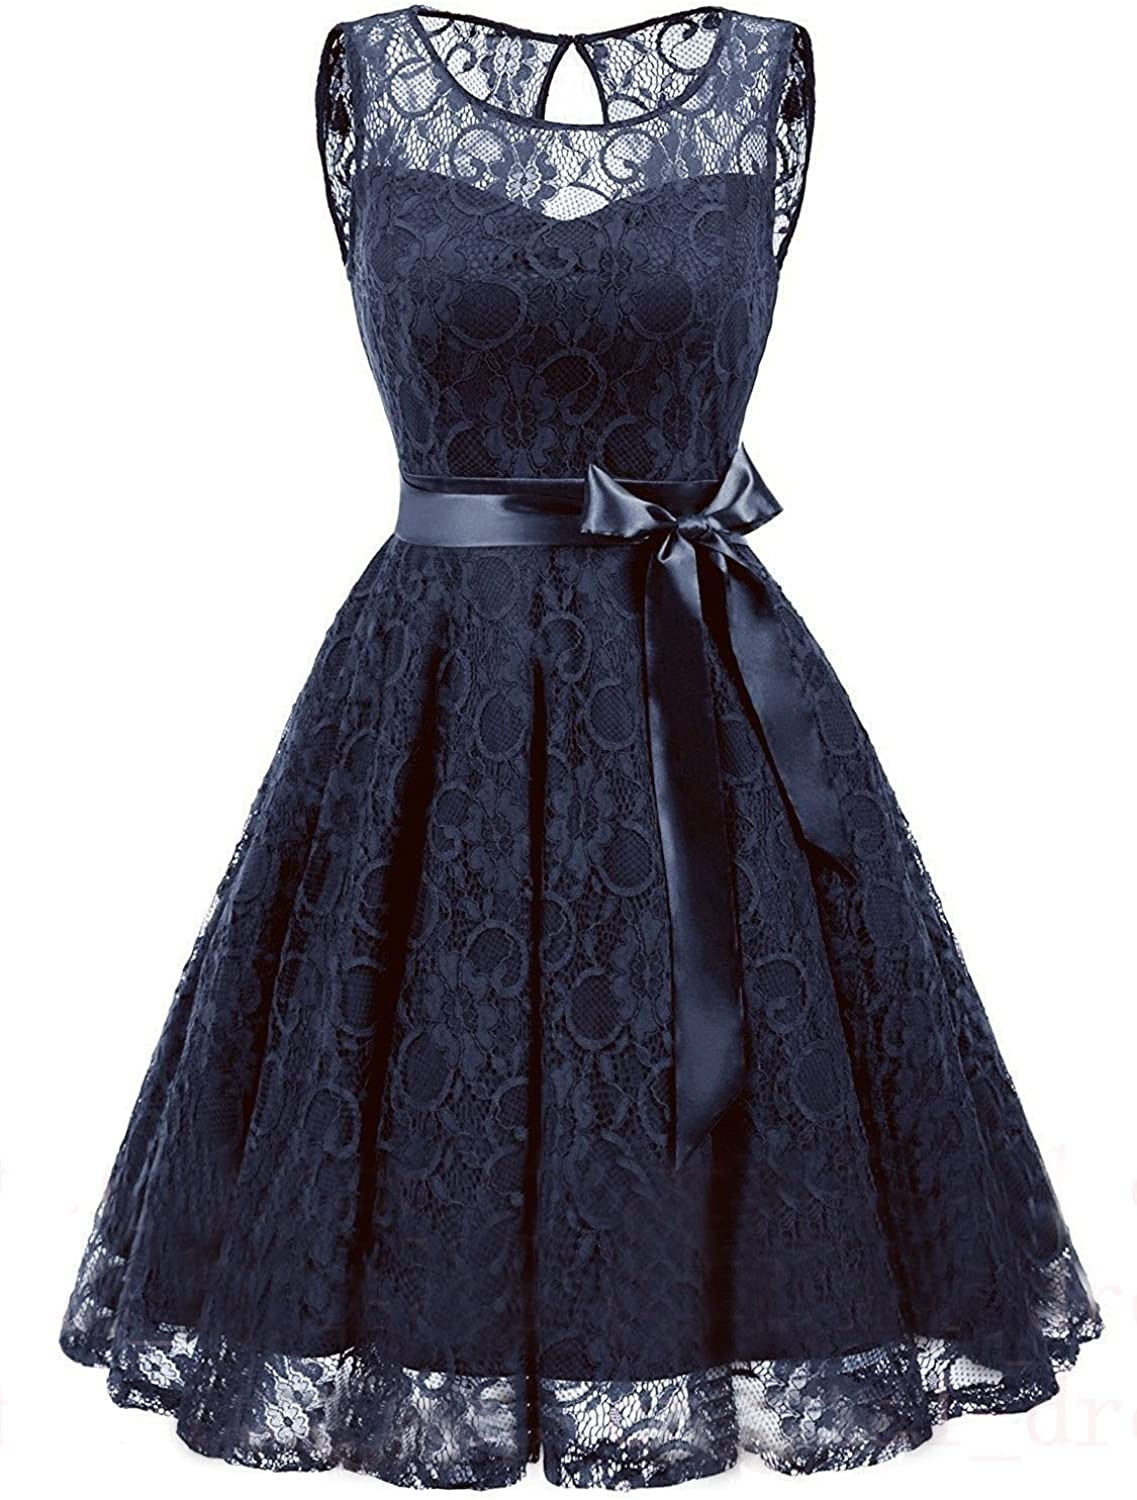 Future Girl Women's Formal Short Floral Lace Swing Bridesmaid Evening Party Prom Dresses